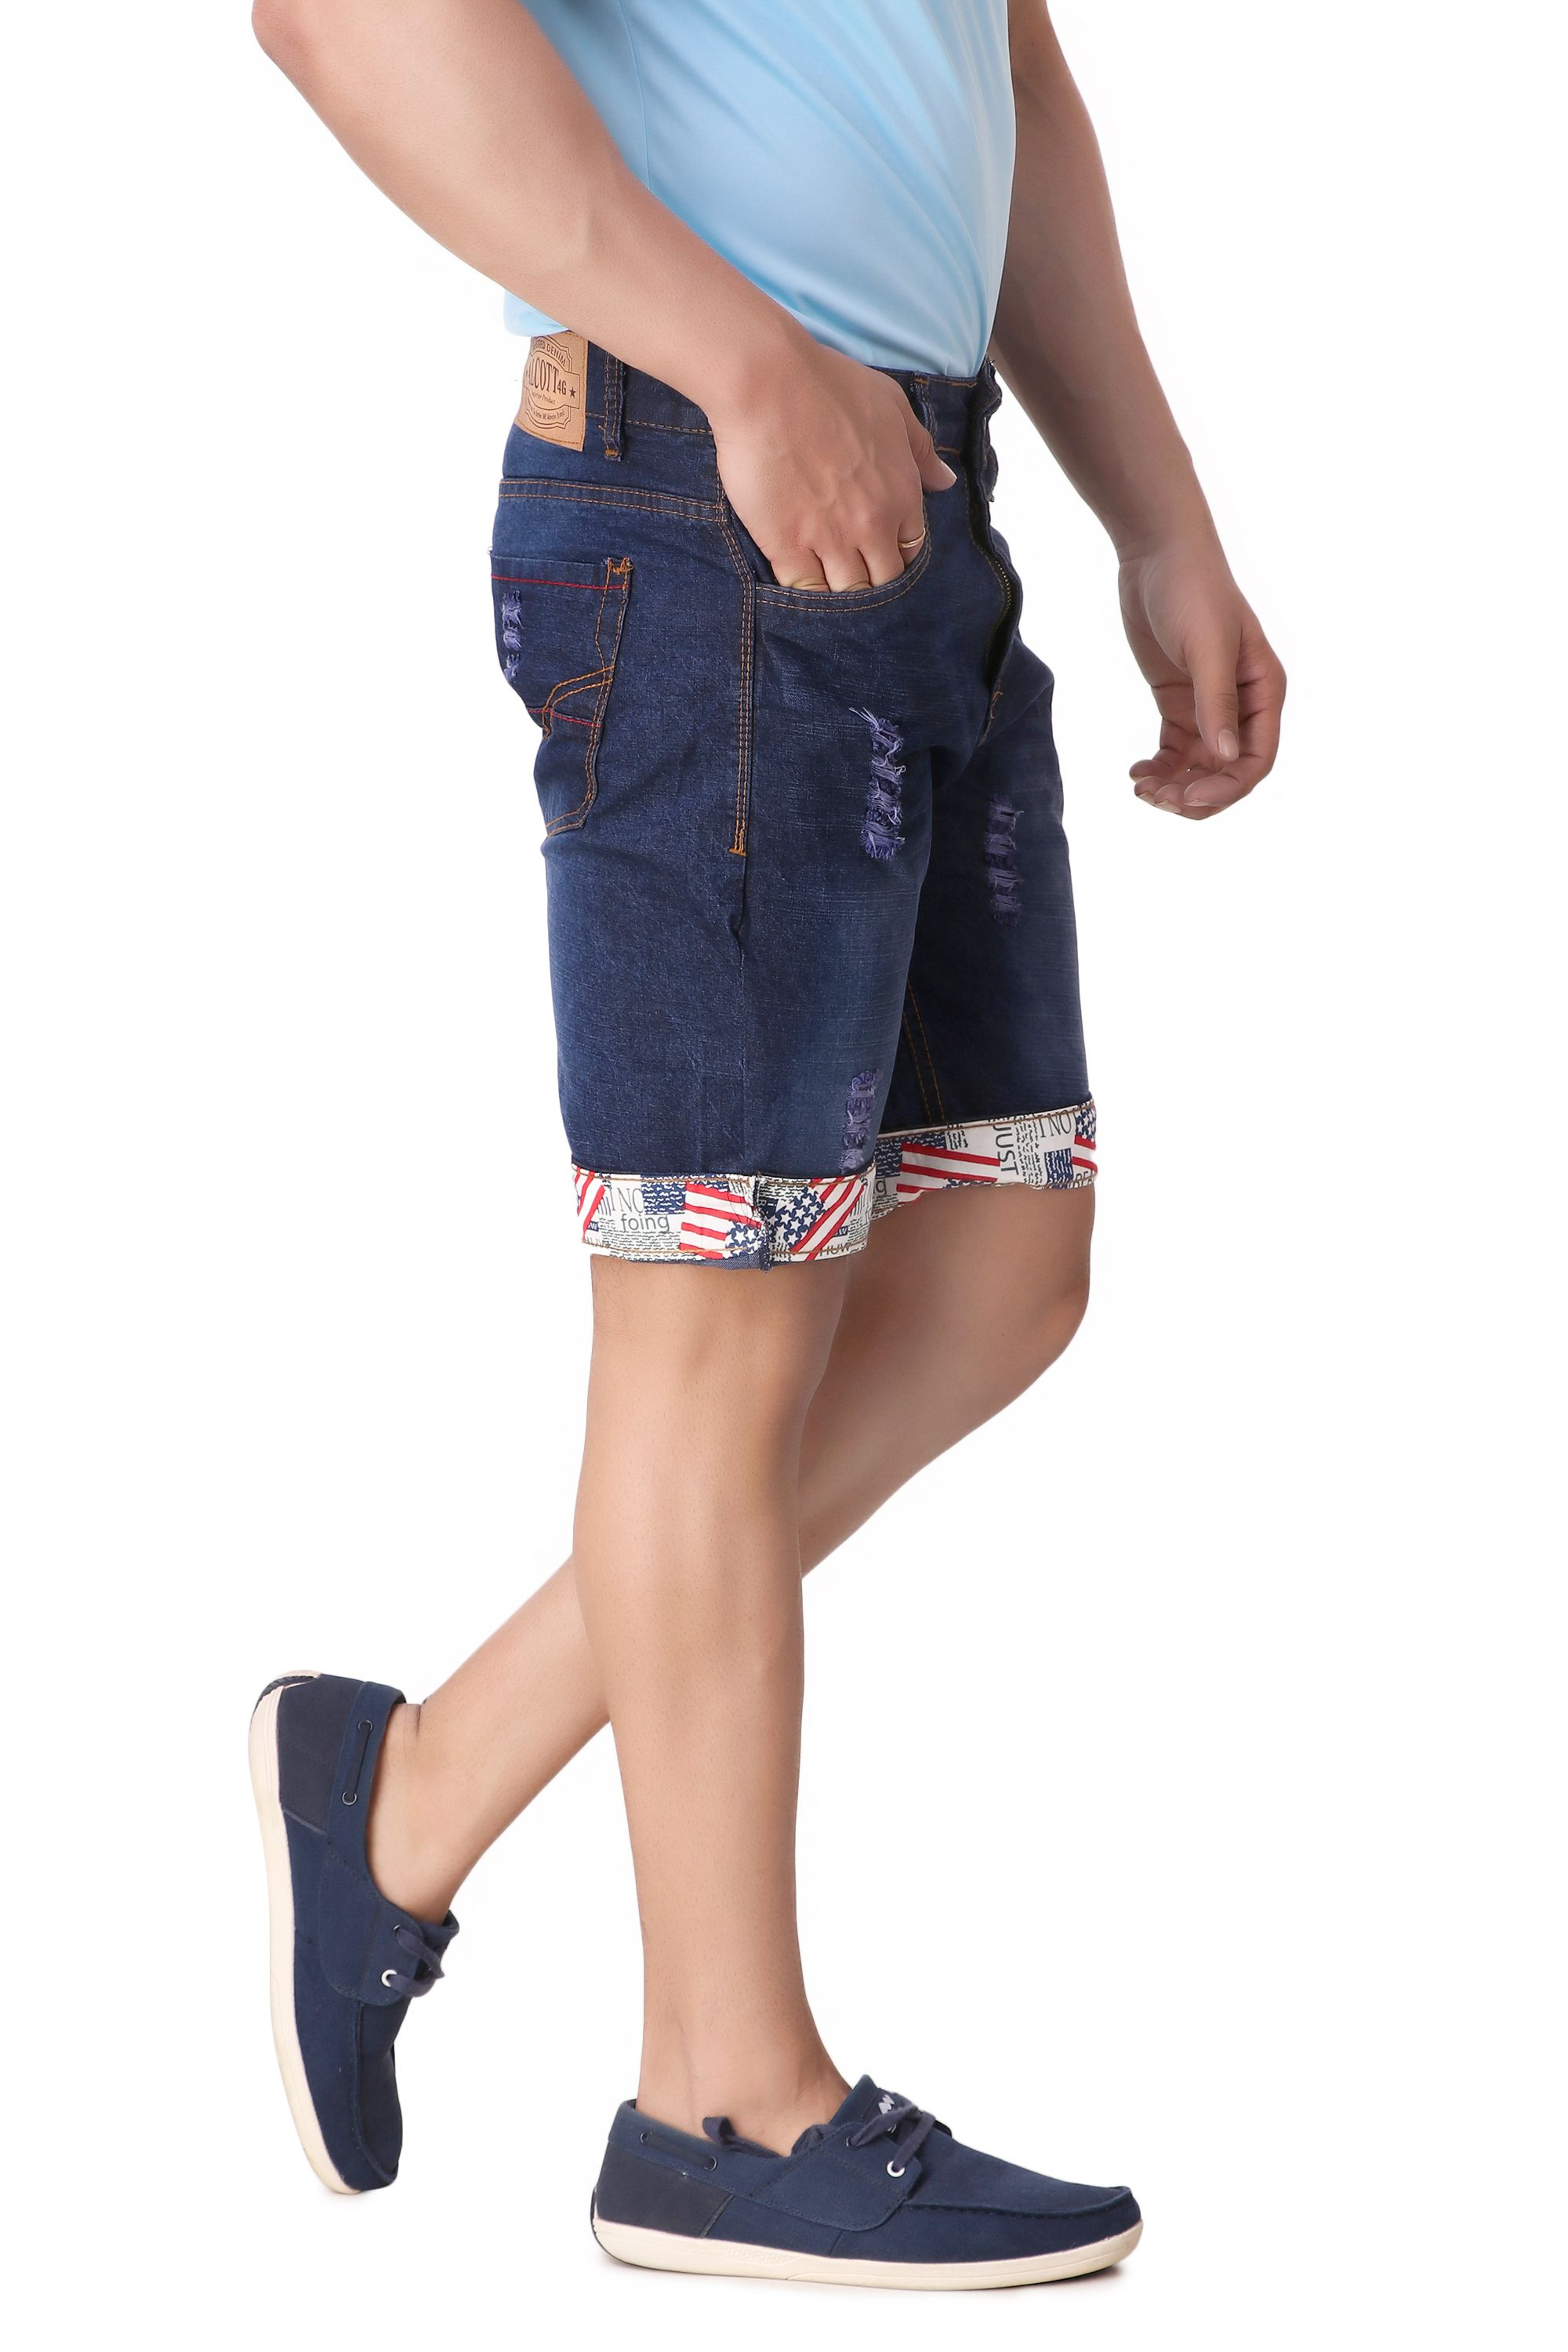 Vertical Denim Stretchable Shorts for Men and Boys